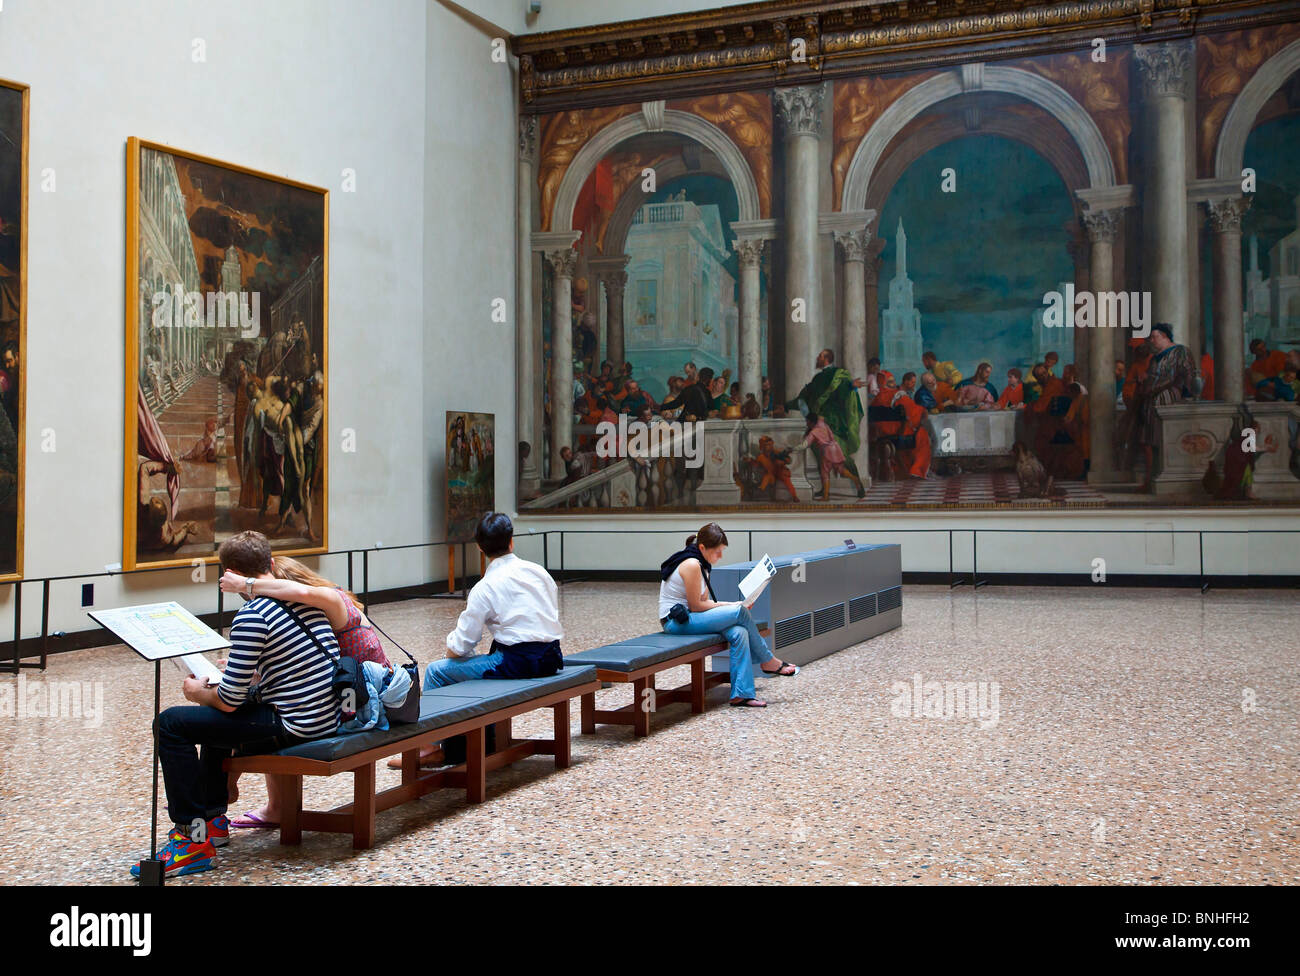 Europe, Italy, Venezia, Venice, Listed as World Heritage by UNESCO, Piazza San marco, Accademia Gallery in Venice - Stock Image